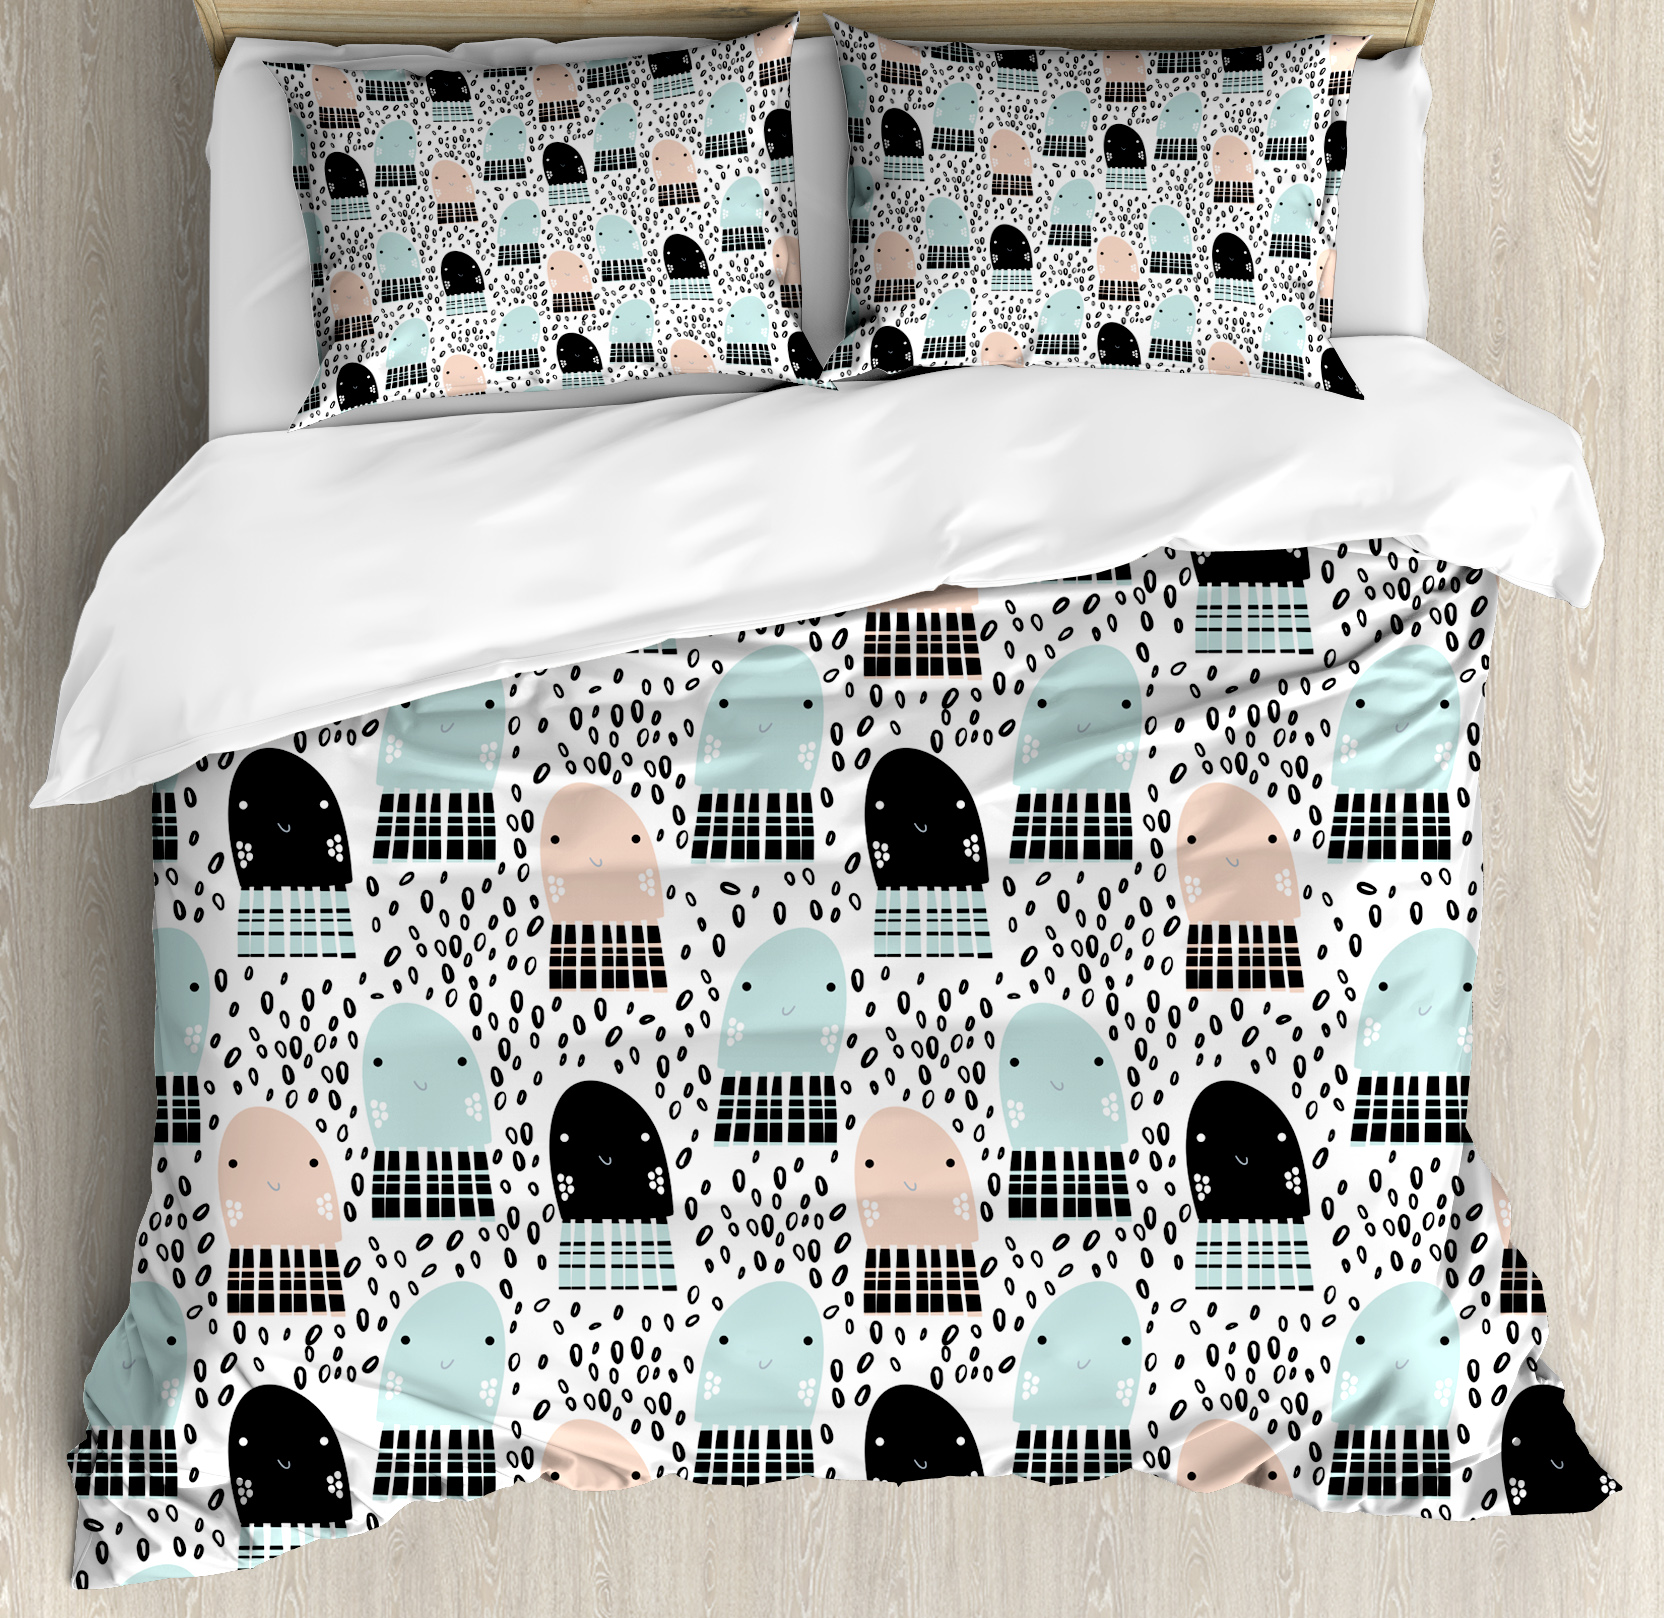 Octopus King Size Duvet Cover Set, Cute Smiling Jellyfishes in the Sea Children Cartoon... by Kozmos